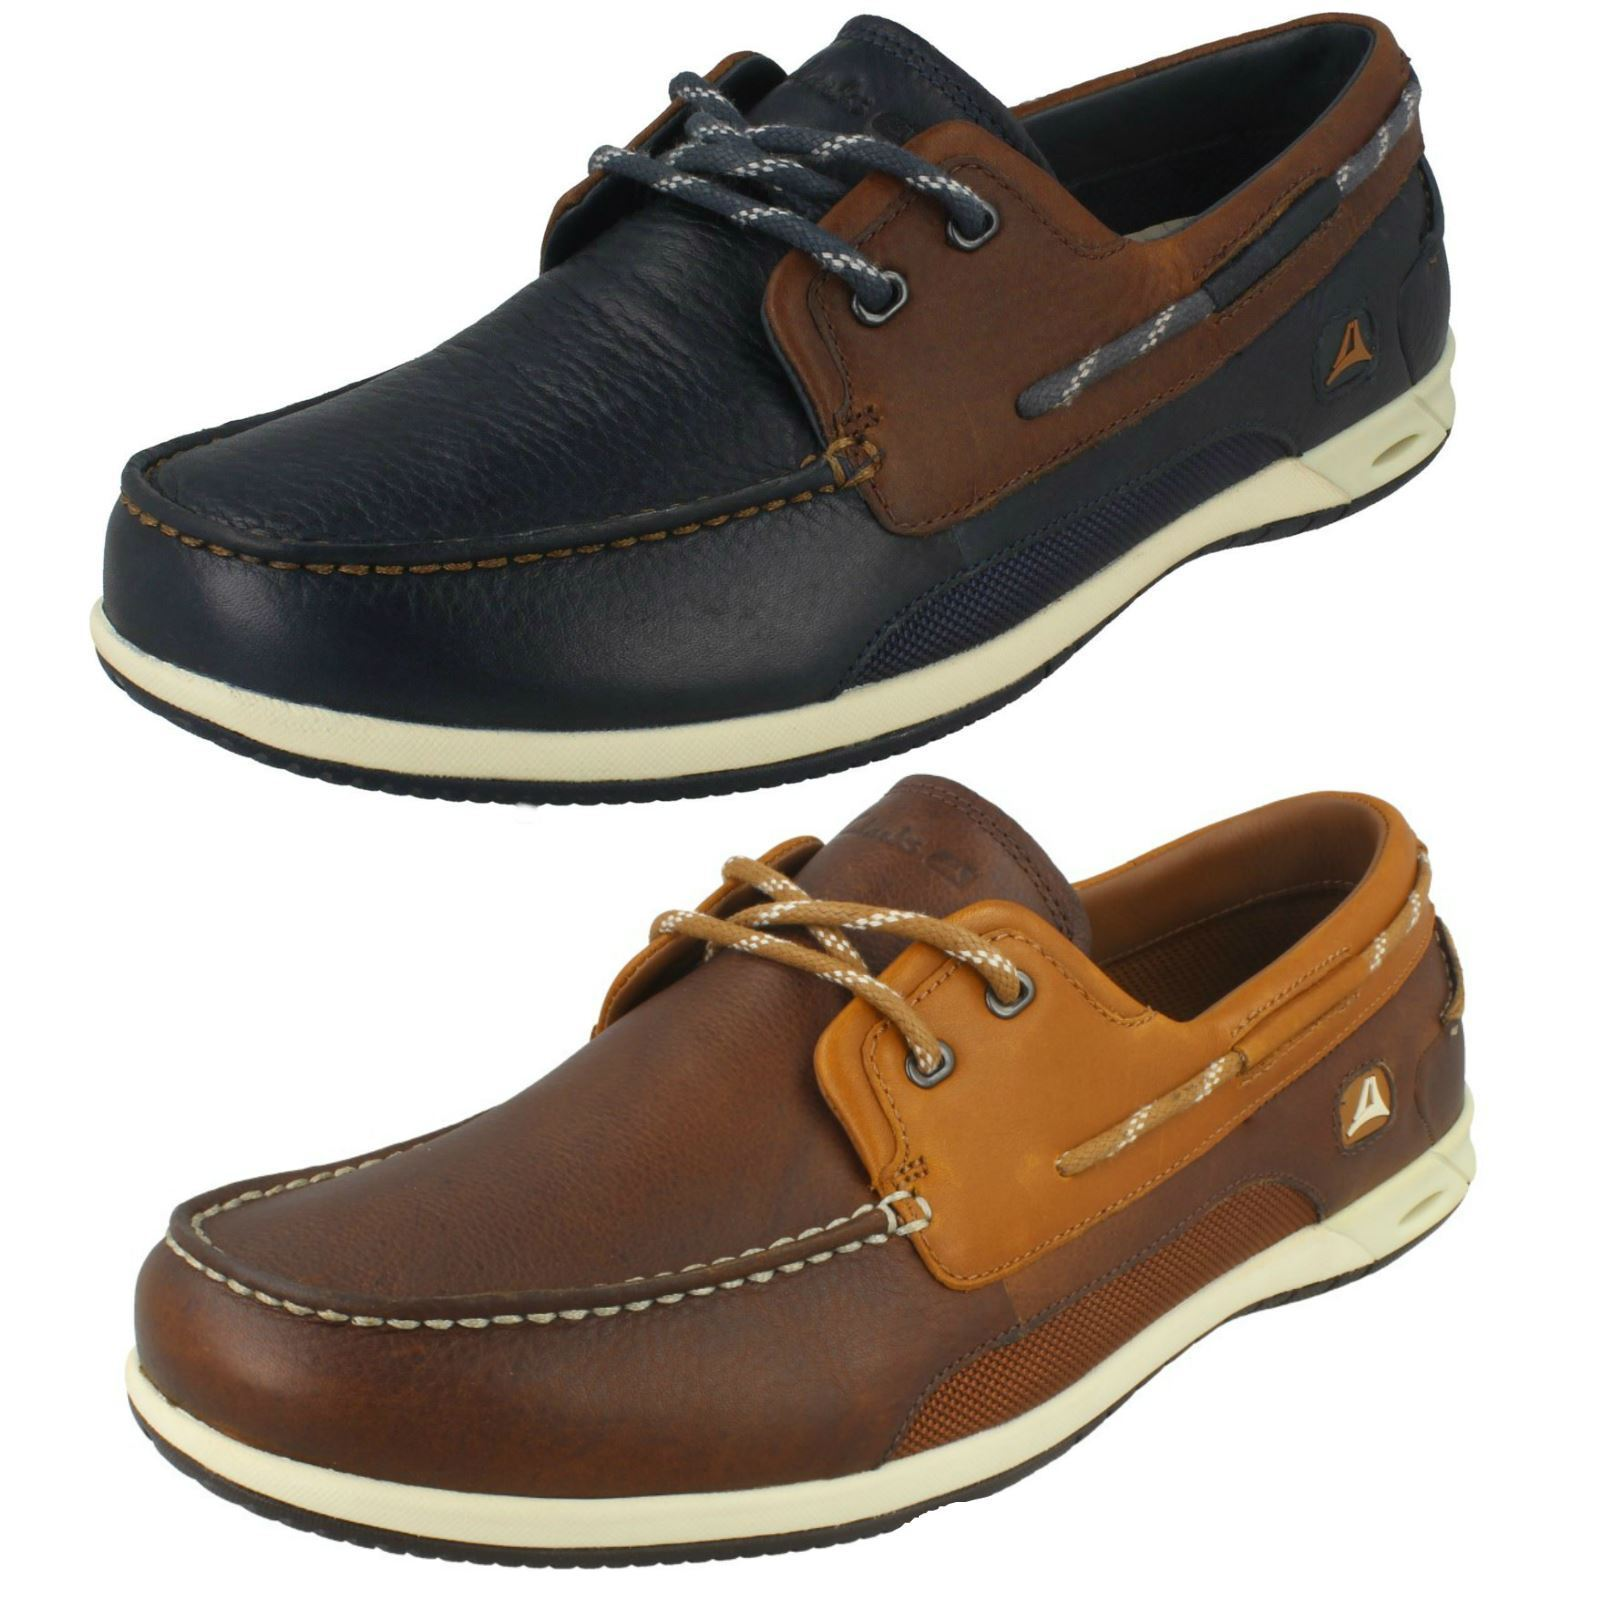 Mens Clarks Deck shoes Orson Harbour